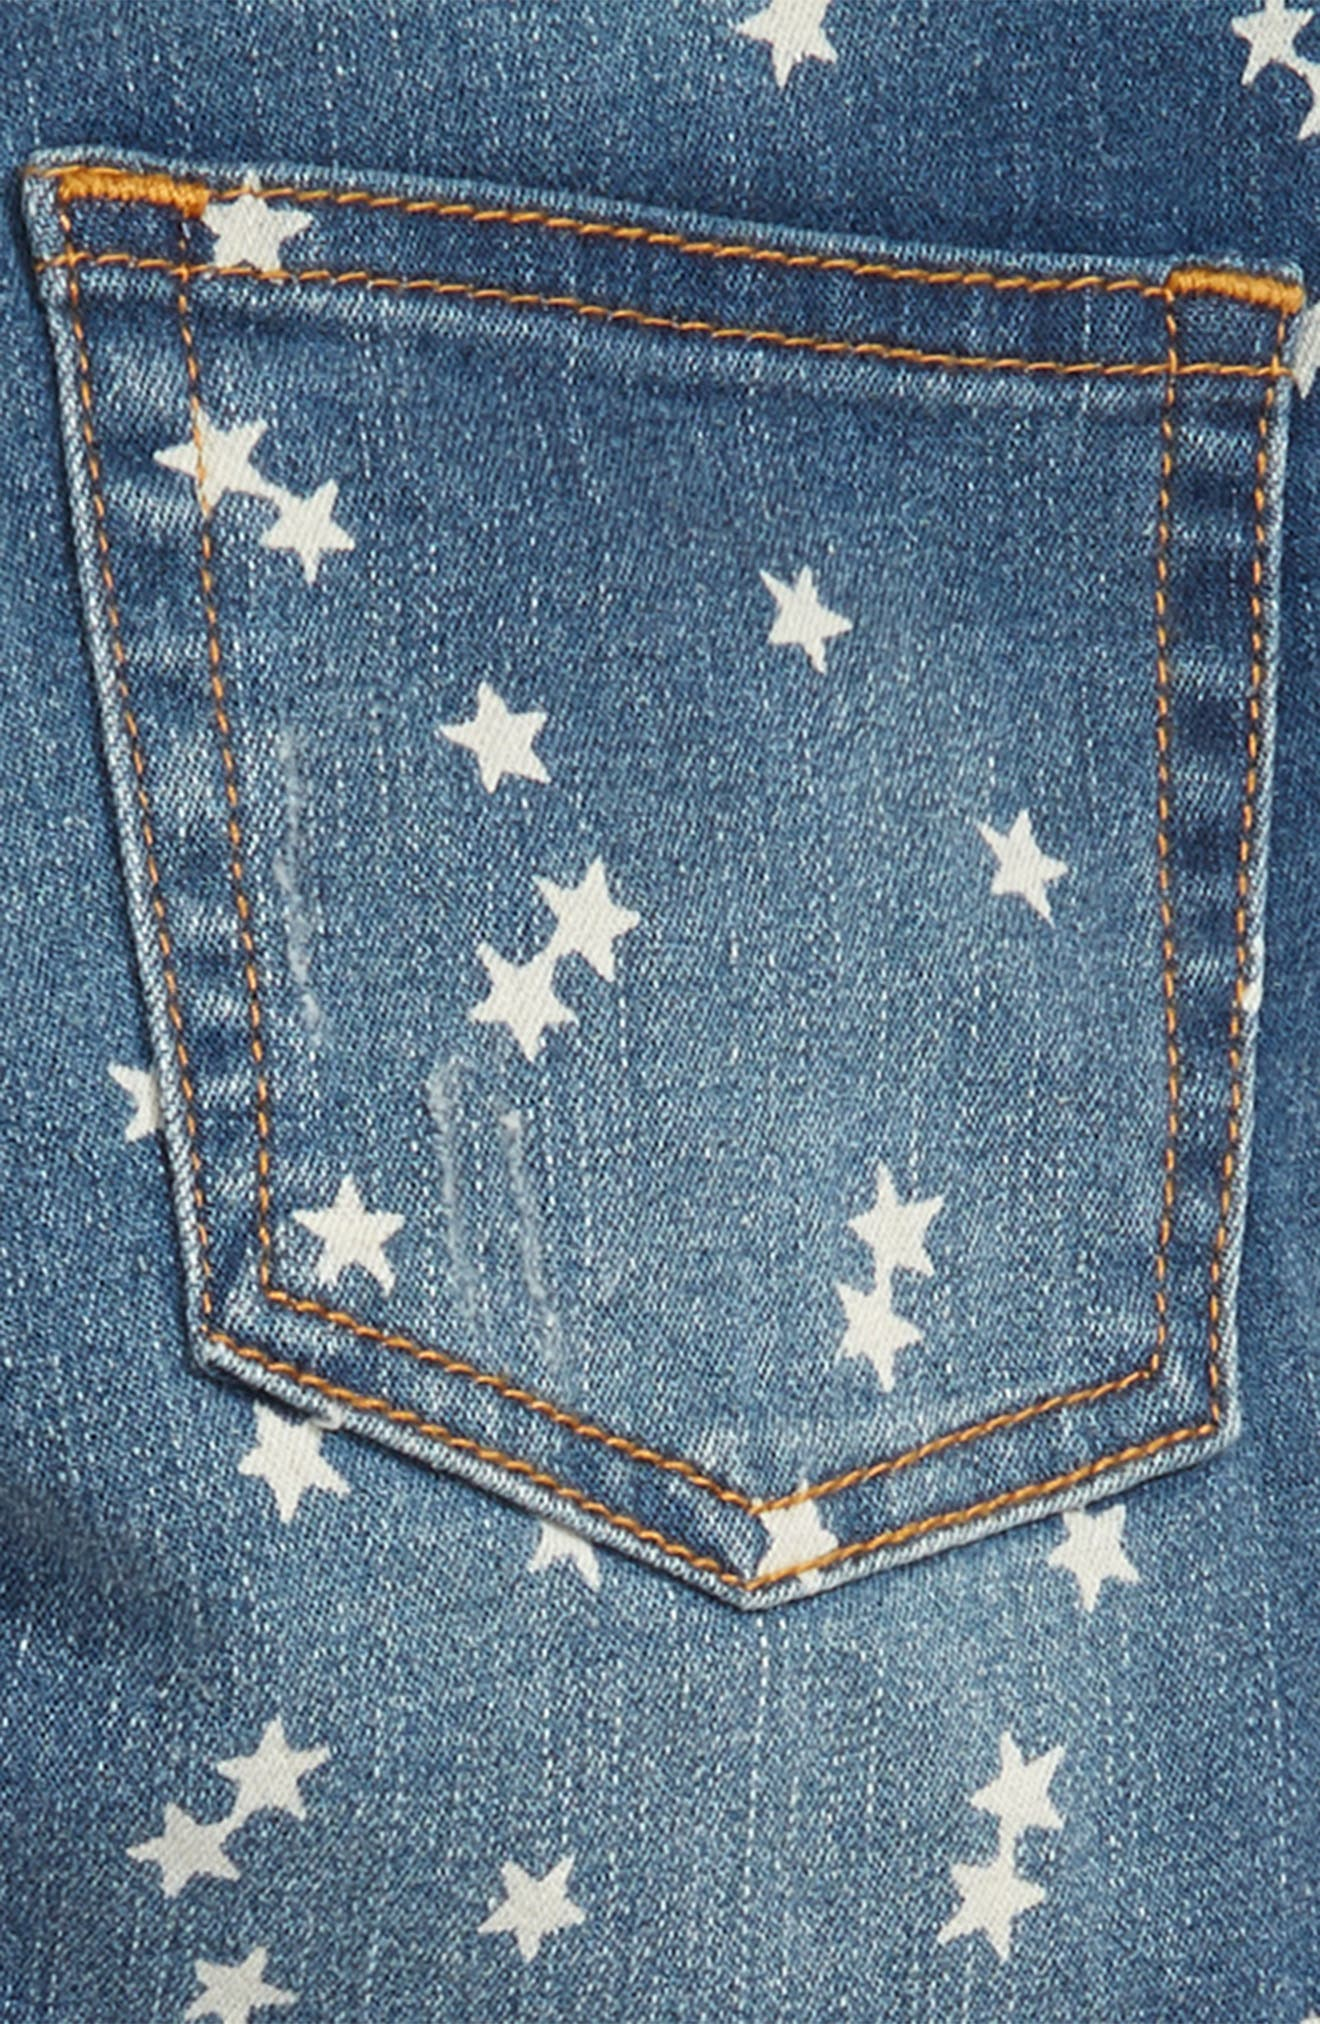 Star-Print Denim Jeans,                             Alternate thumbnail 3, color,                             WP1522  RYE WASH